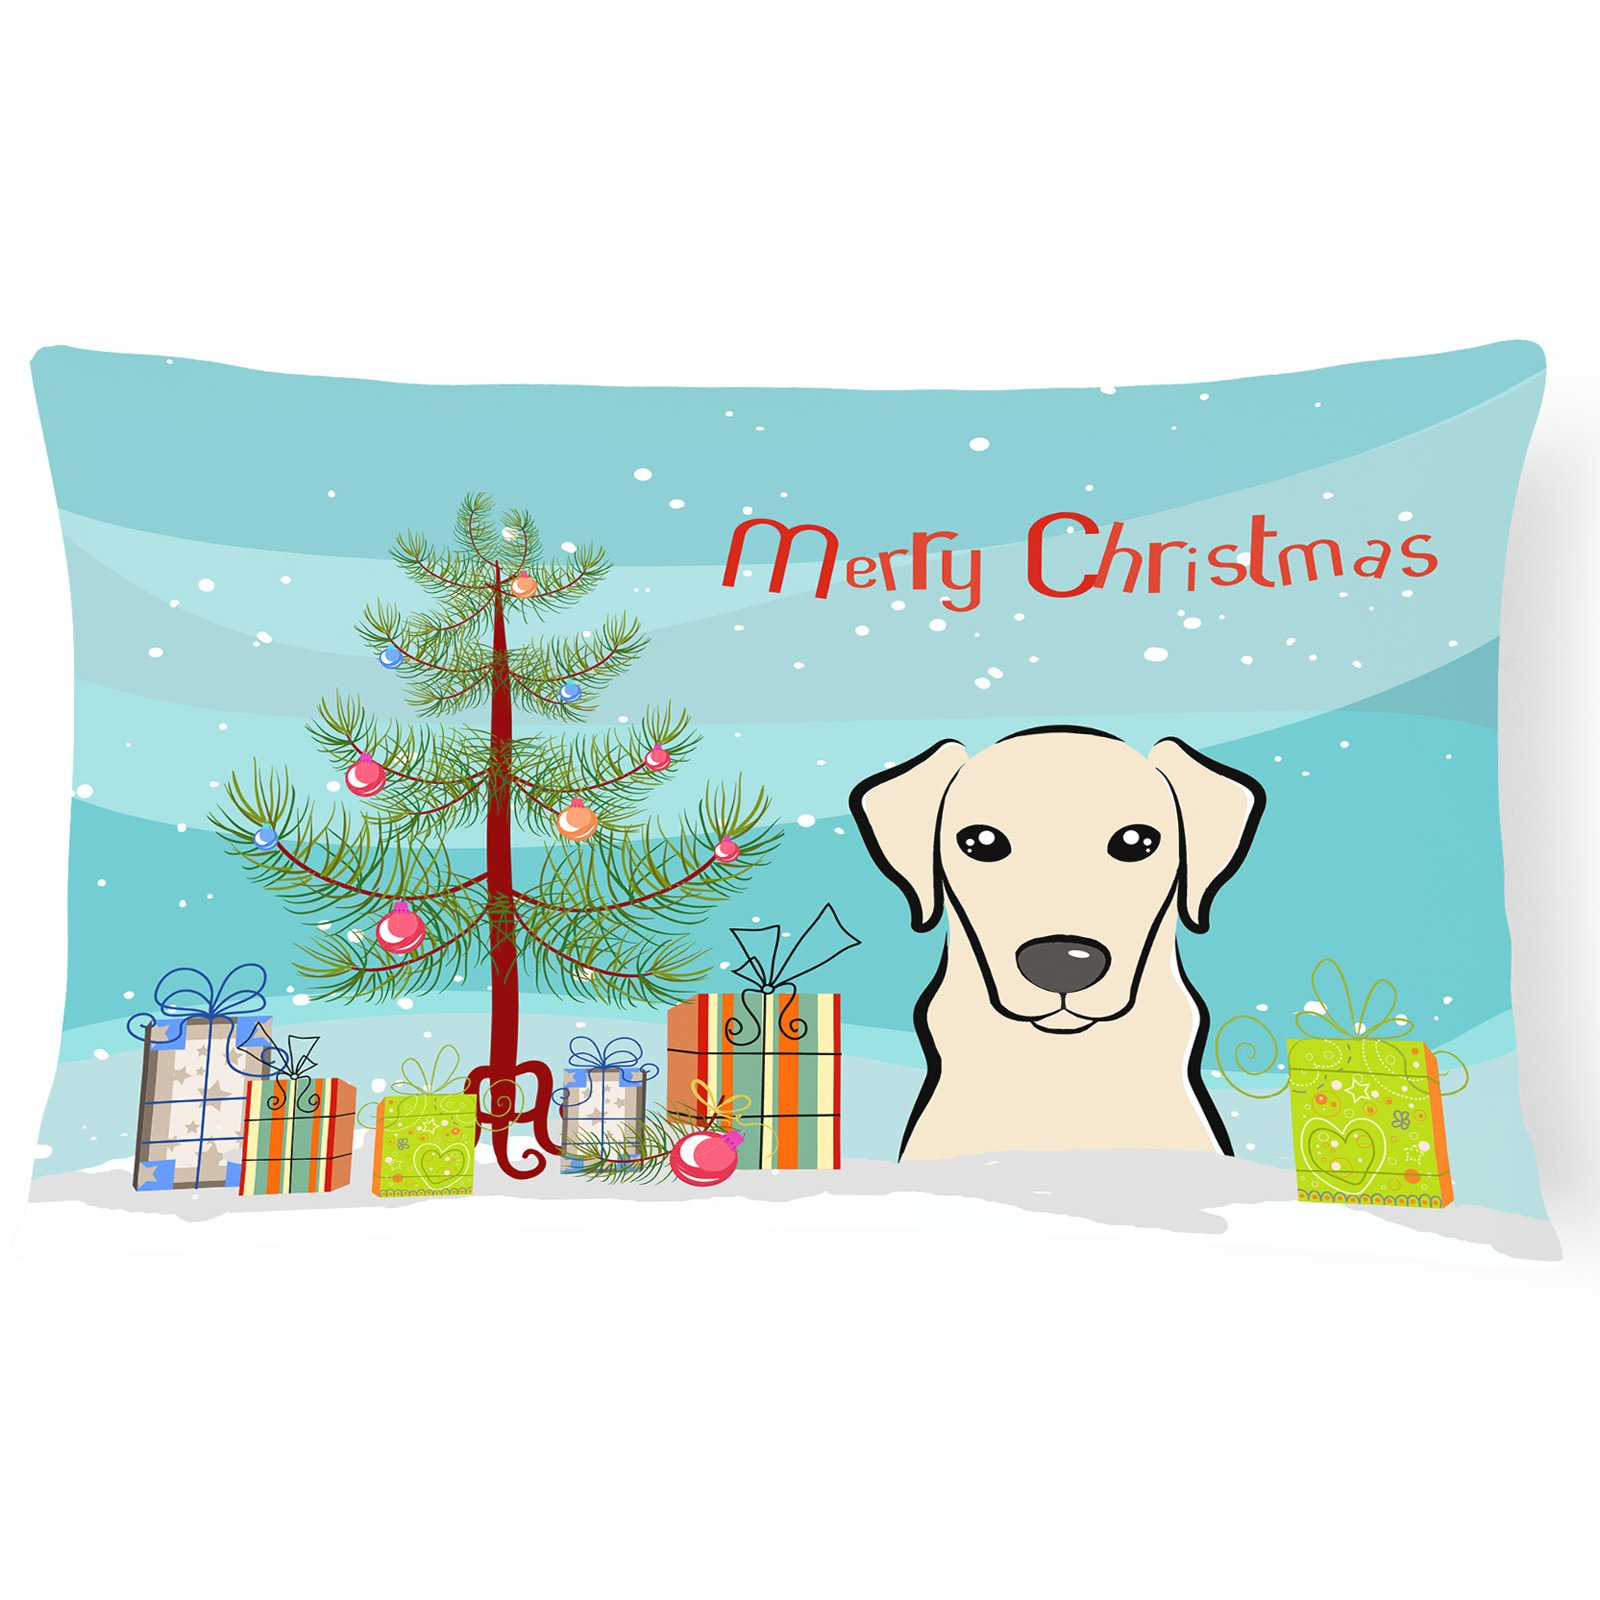 Carolines Treasures Christmas Tree and Yellow Labrador Decorative Outdoor Pillow